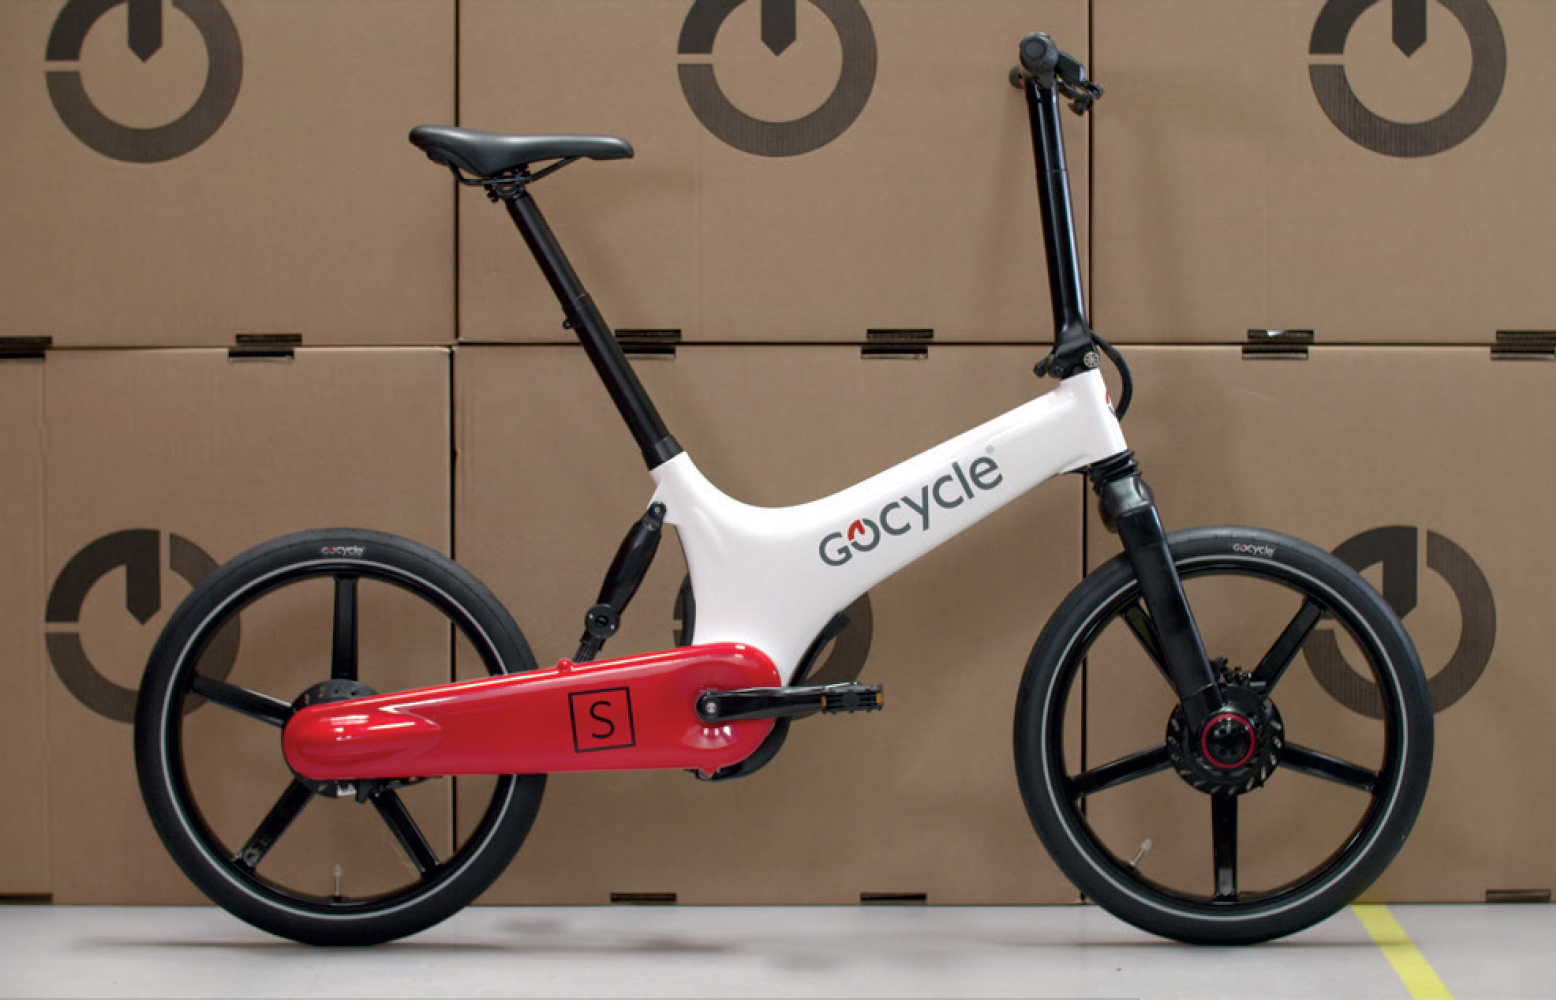 Gocycle ready for delivering